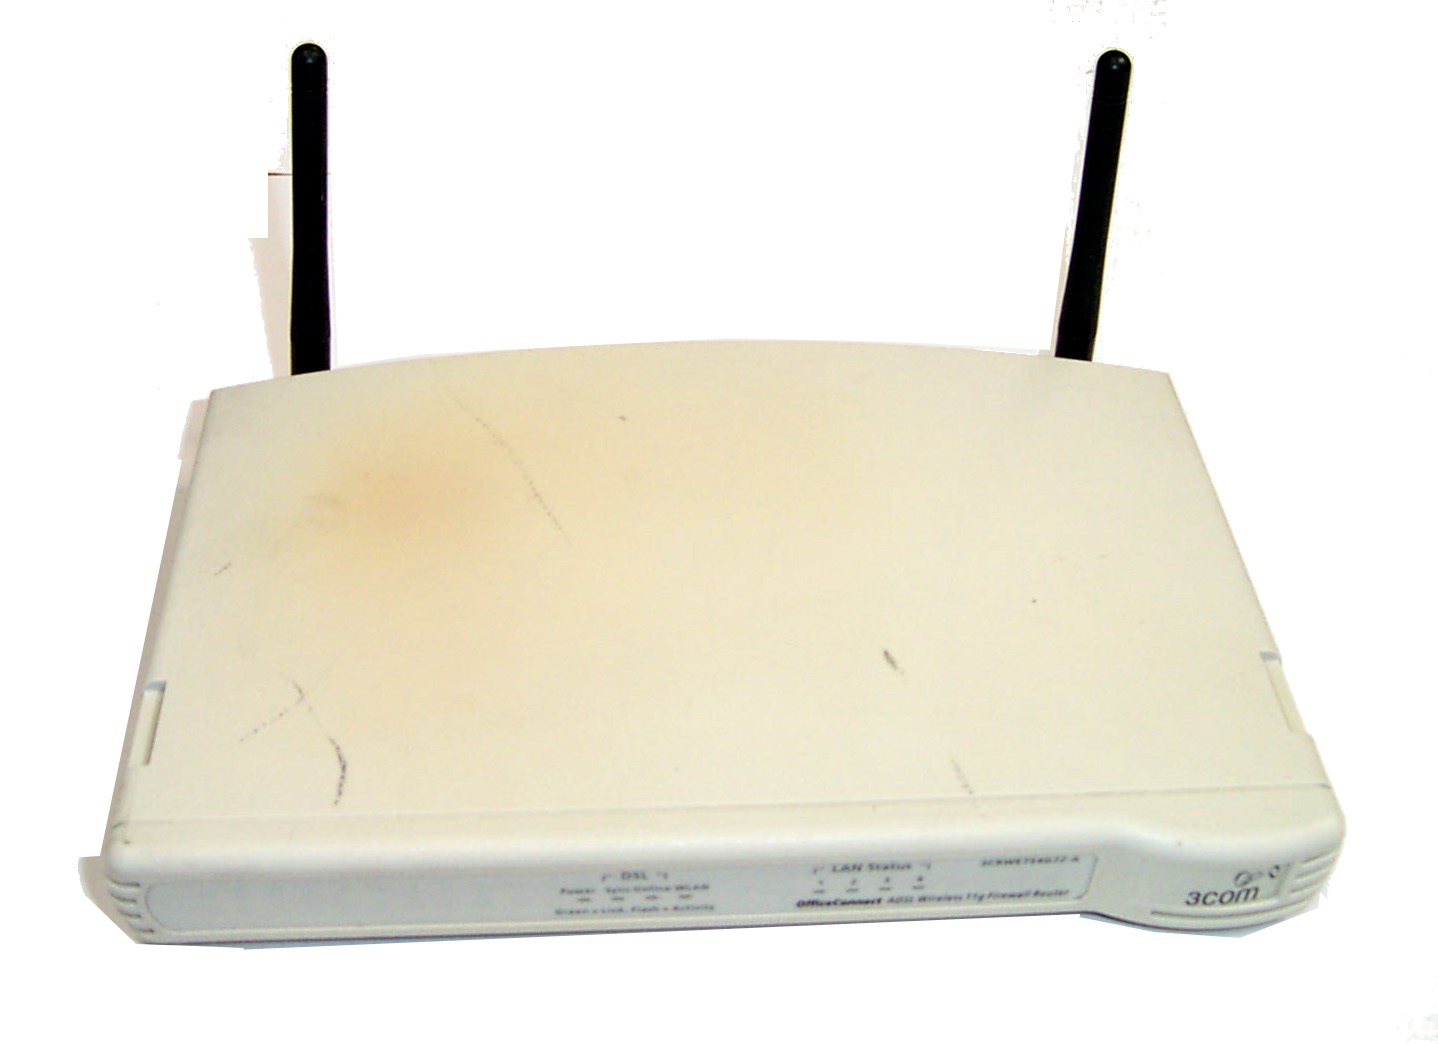 3Com 3CRWE754G72-A Model WL-540A ADSL Wireless 11g Firewall Router-No AC Adapter